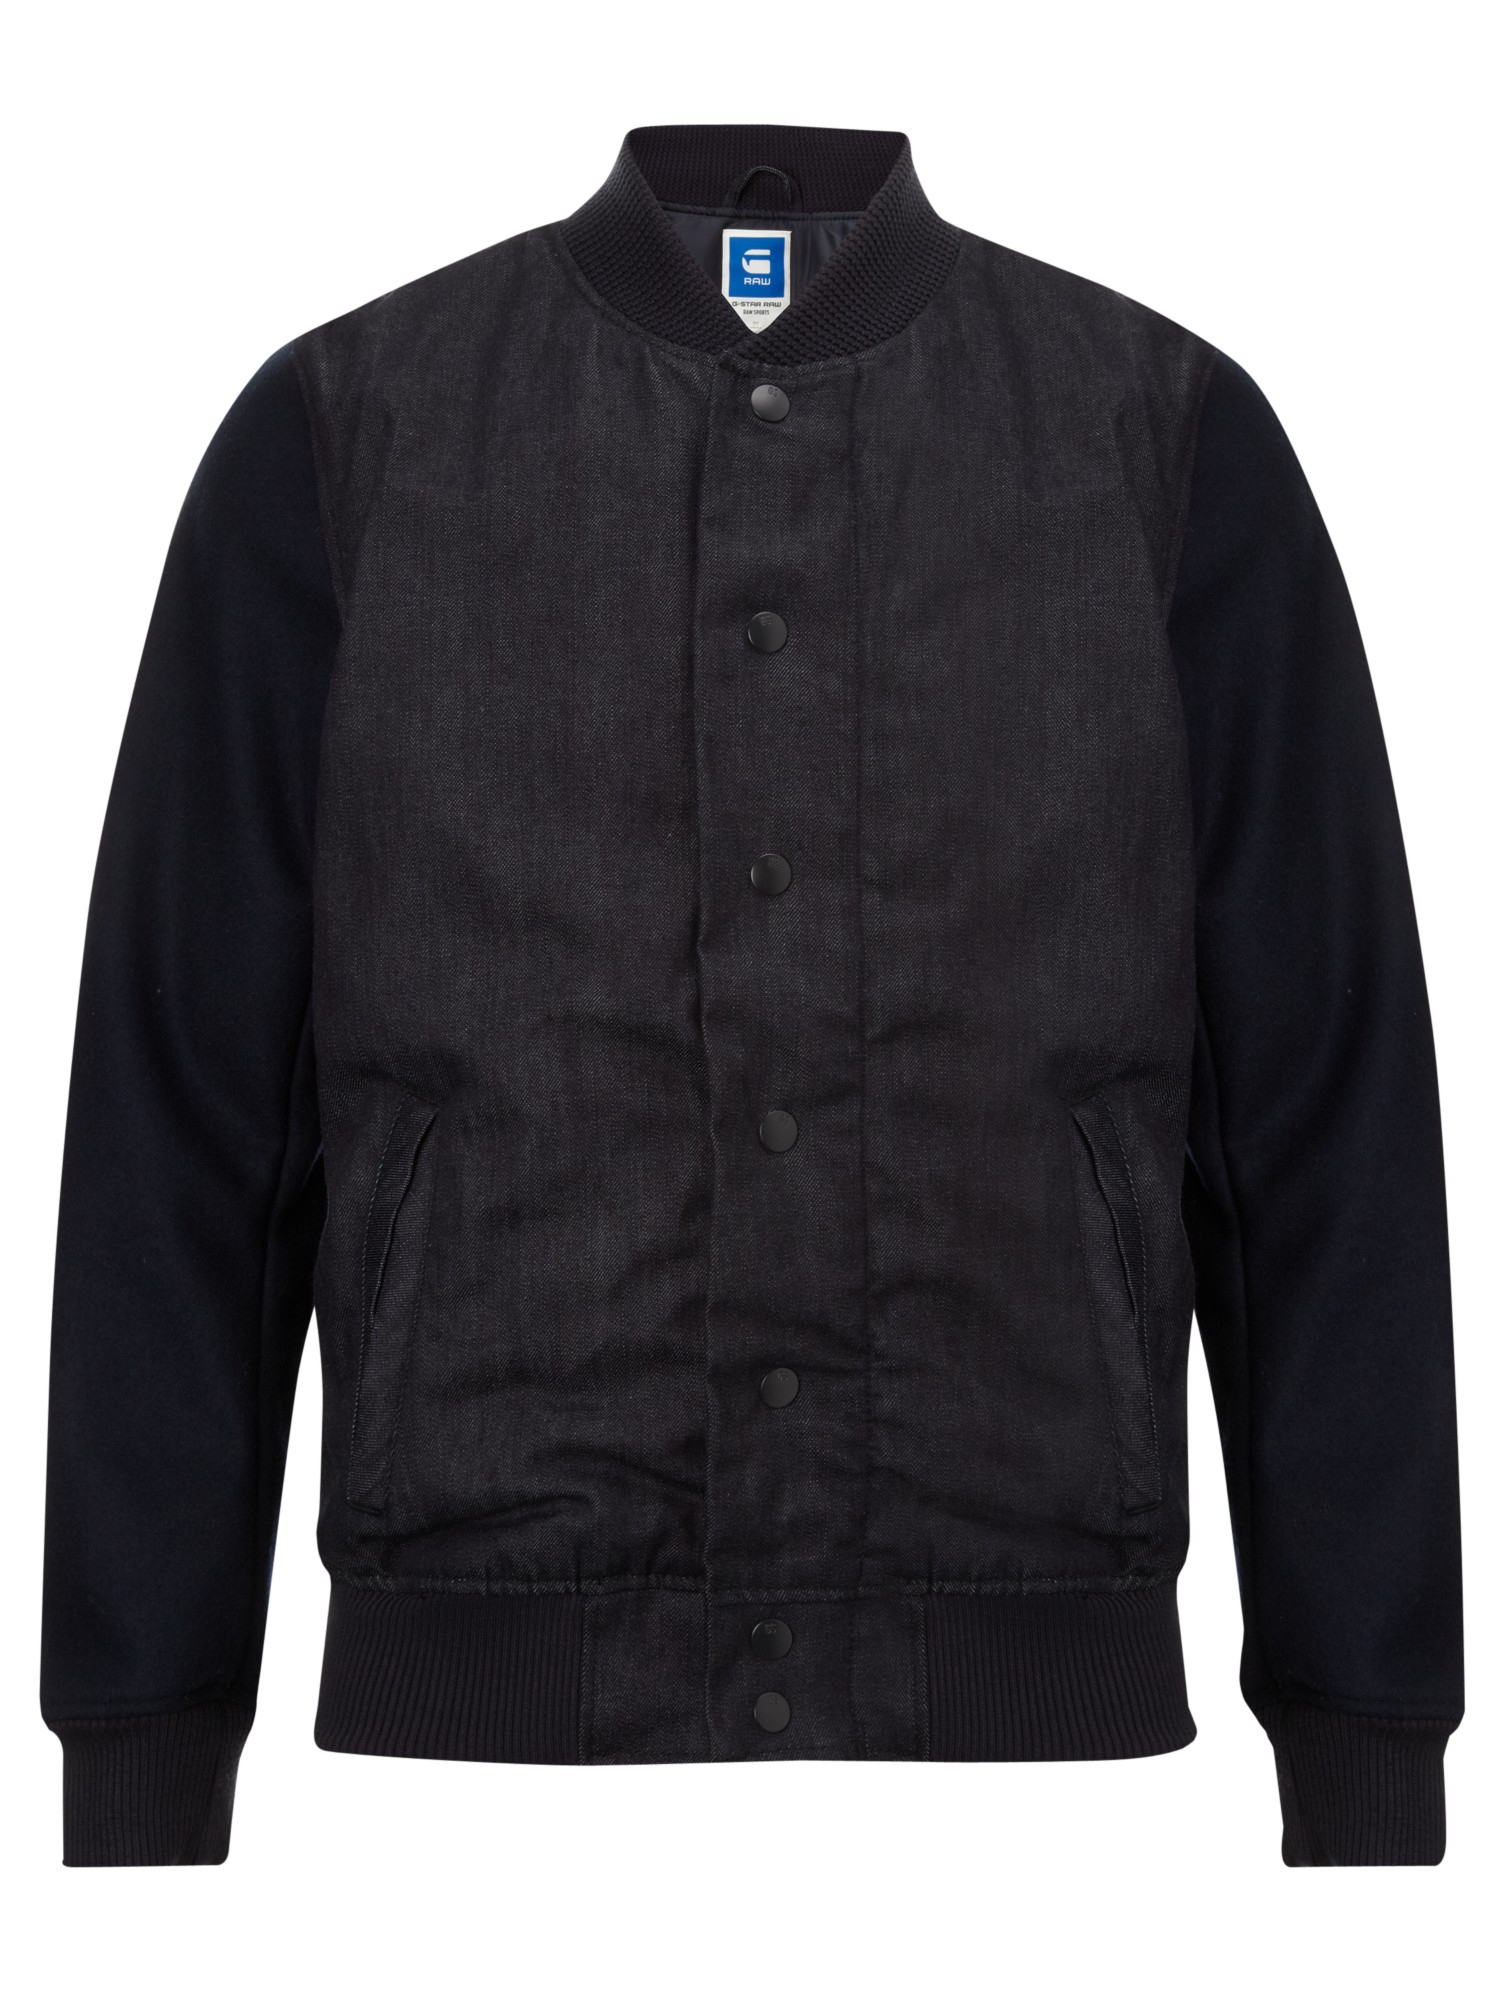 lyst g star raw salvos bomber jacket in black for men. Black Bedroom Furniture Sets. Home Design Ideas